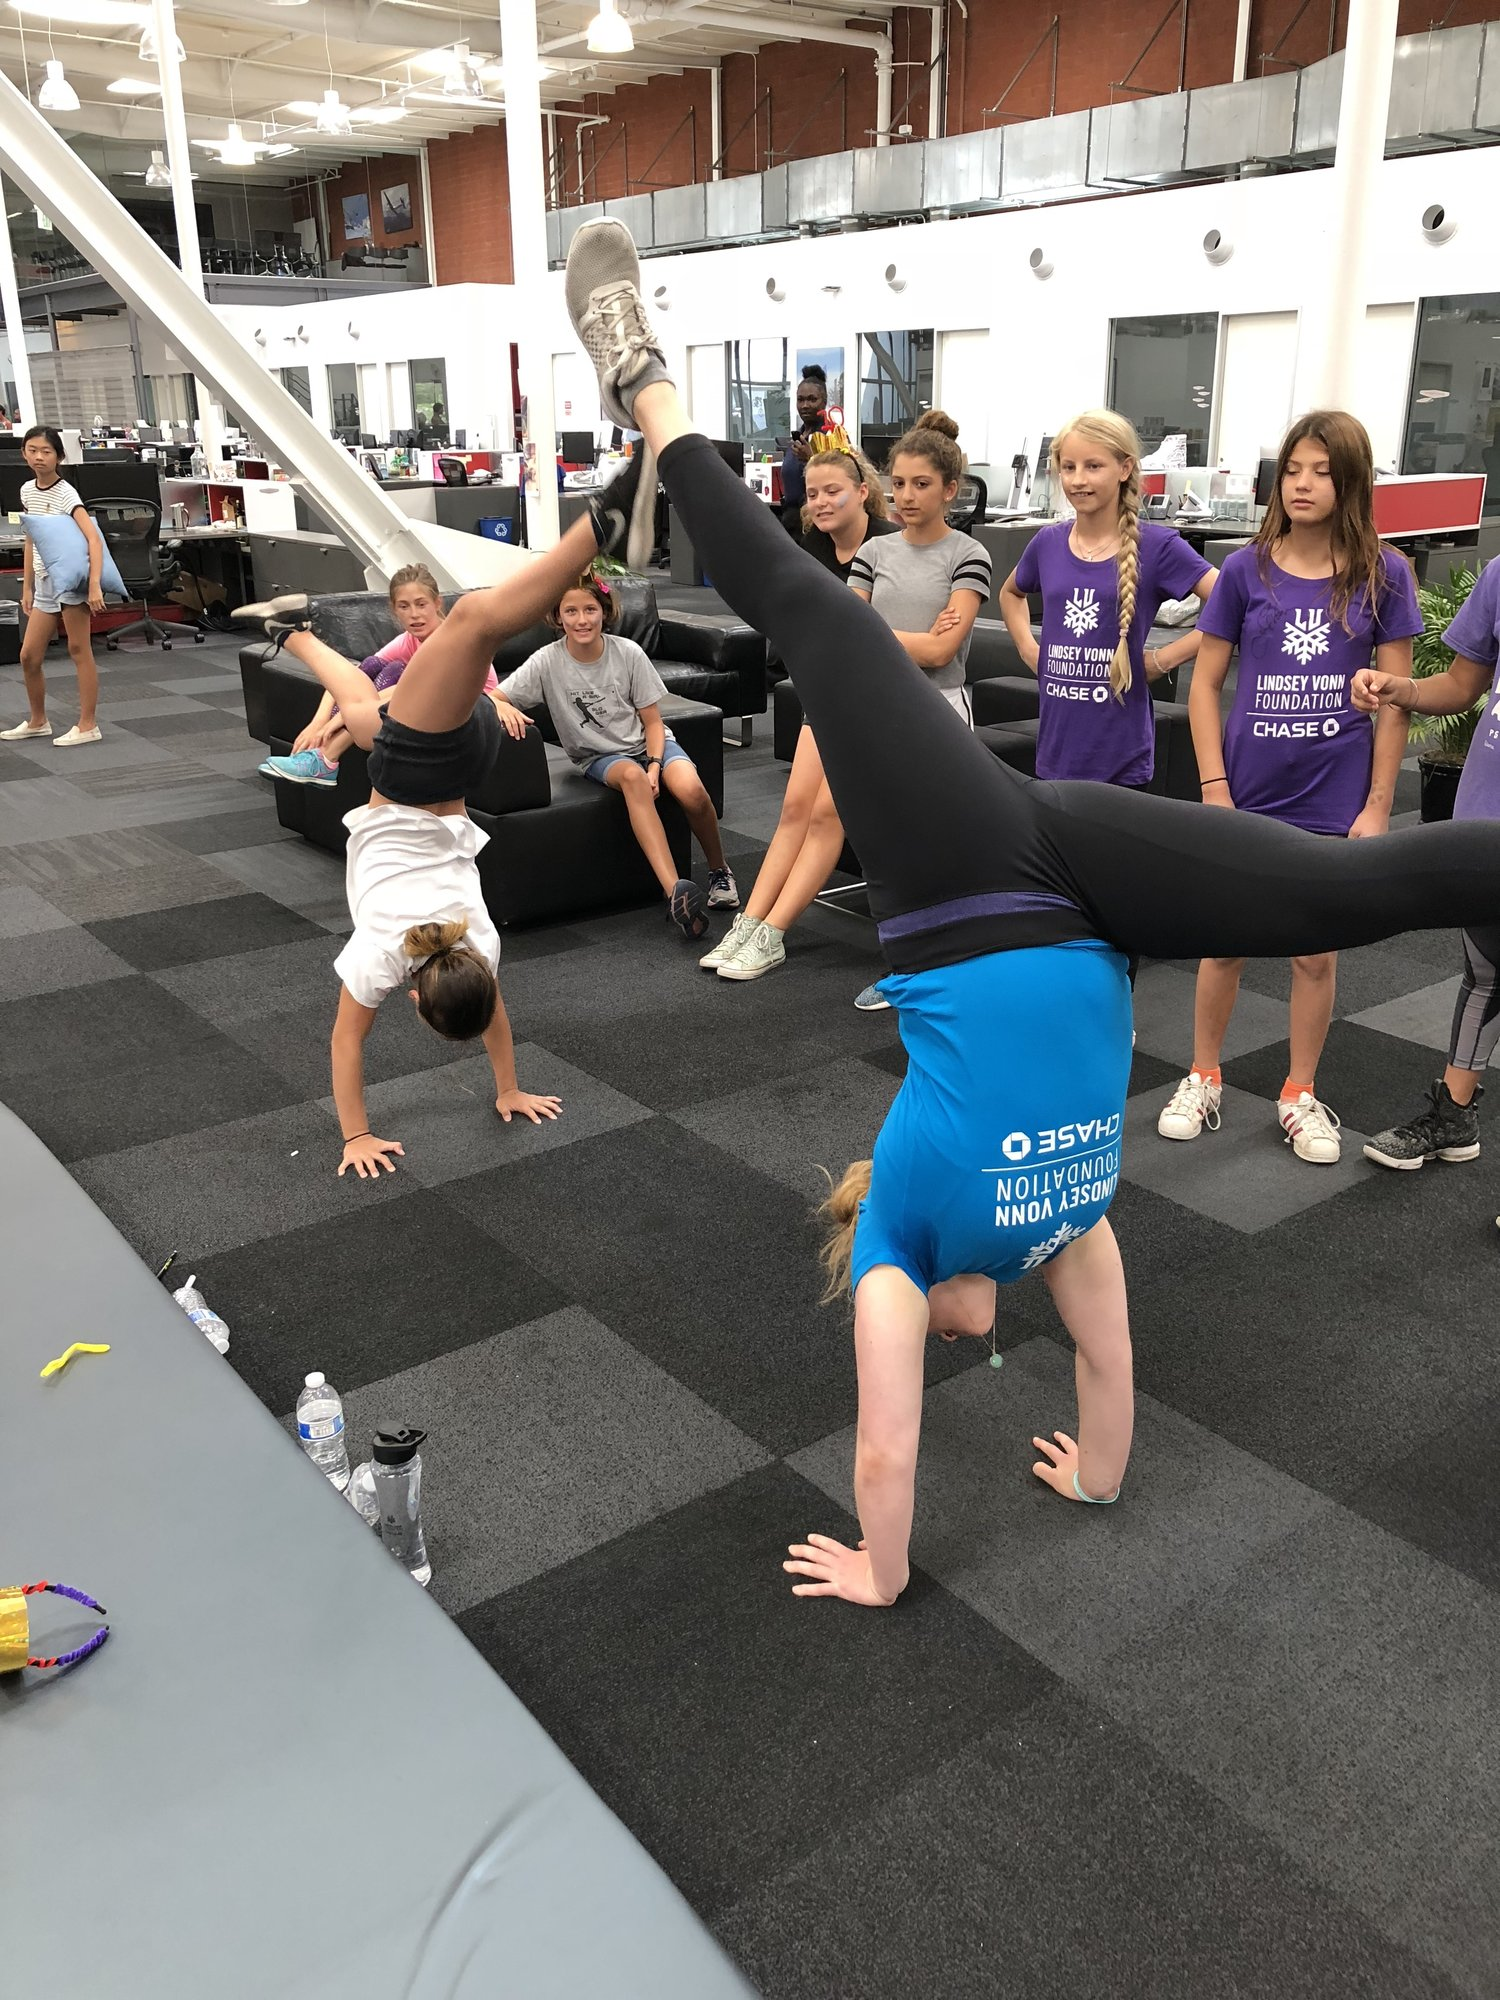 Camper/mentor handstand contest. An average activity at an all girls athlete camp.